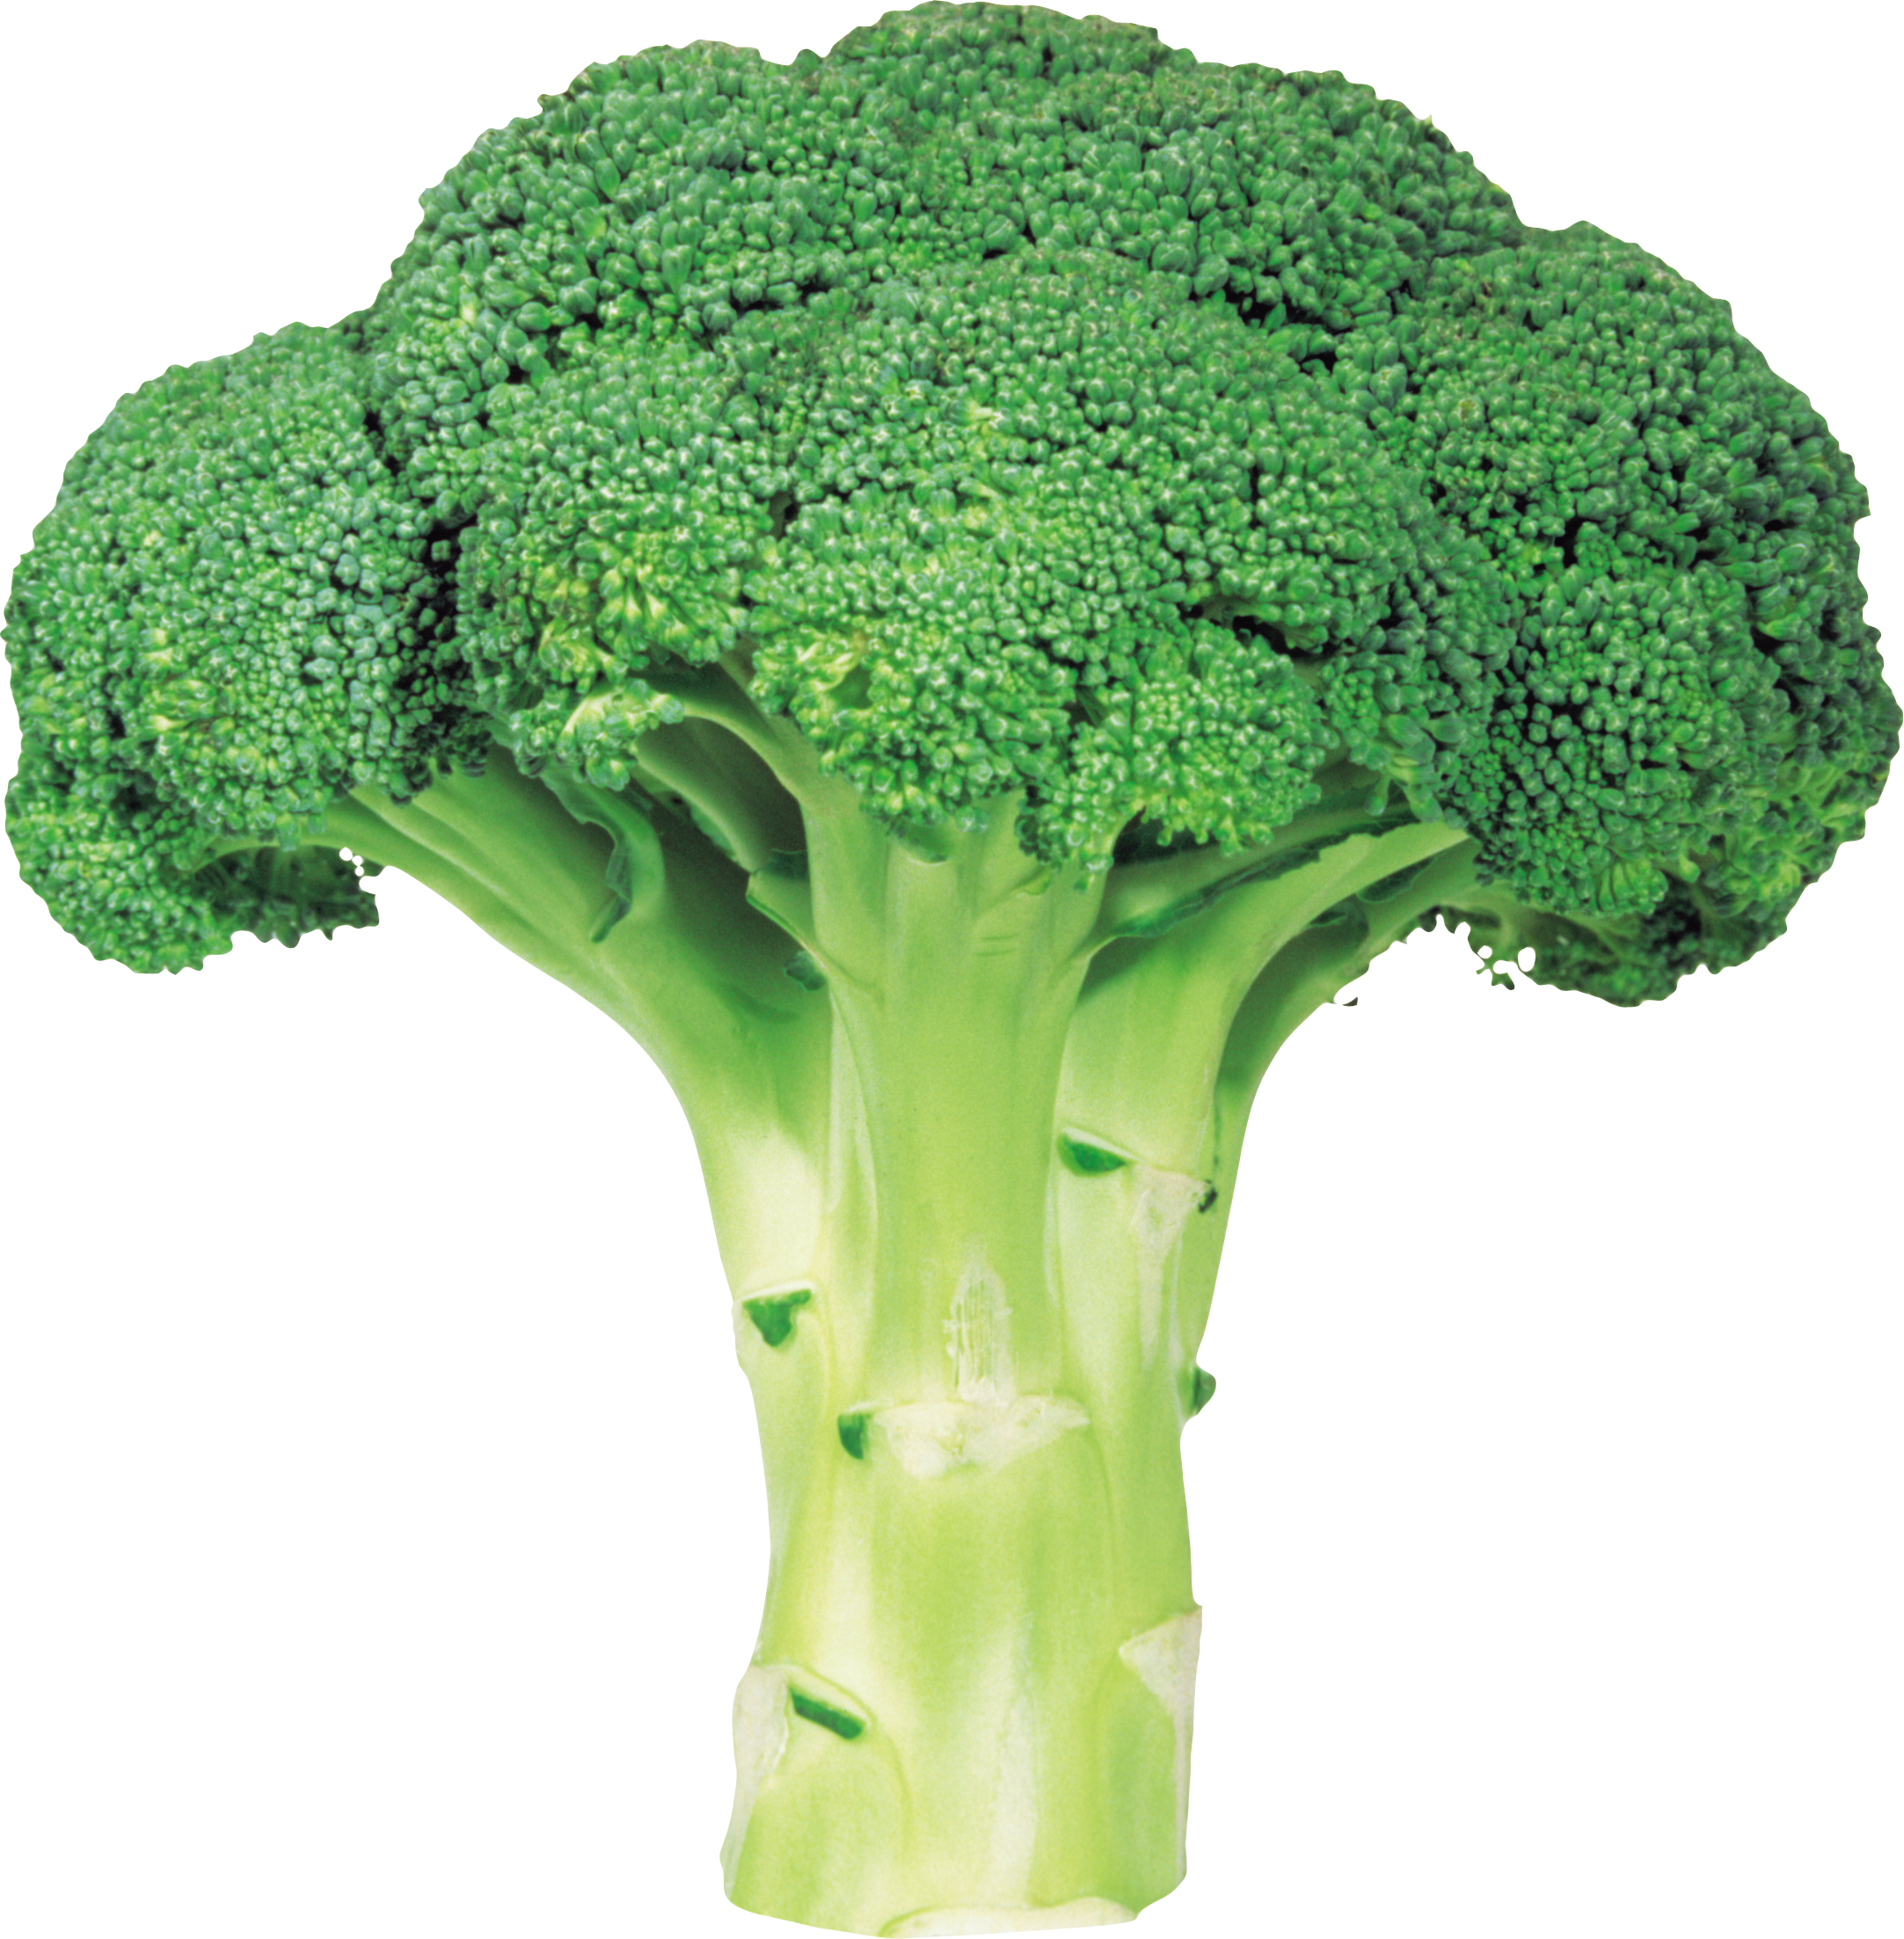 Broccoli PNG image with transparent background - Broccoli HD PNG